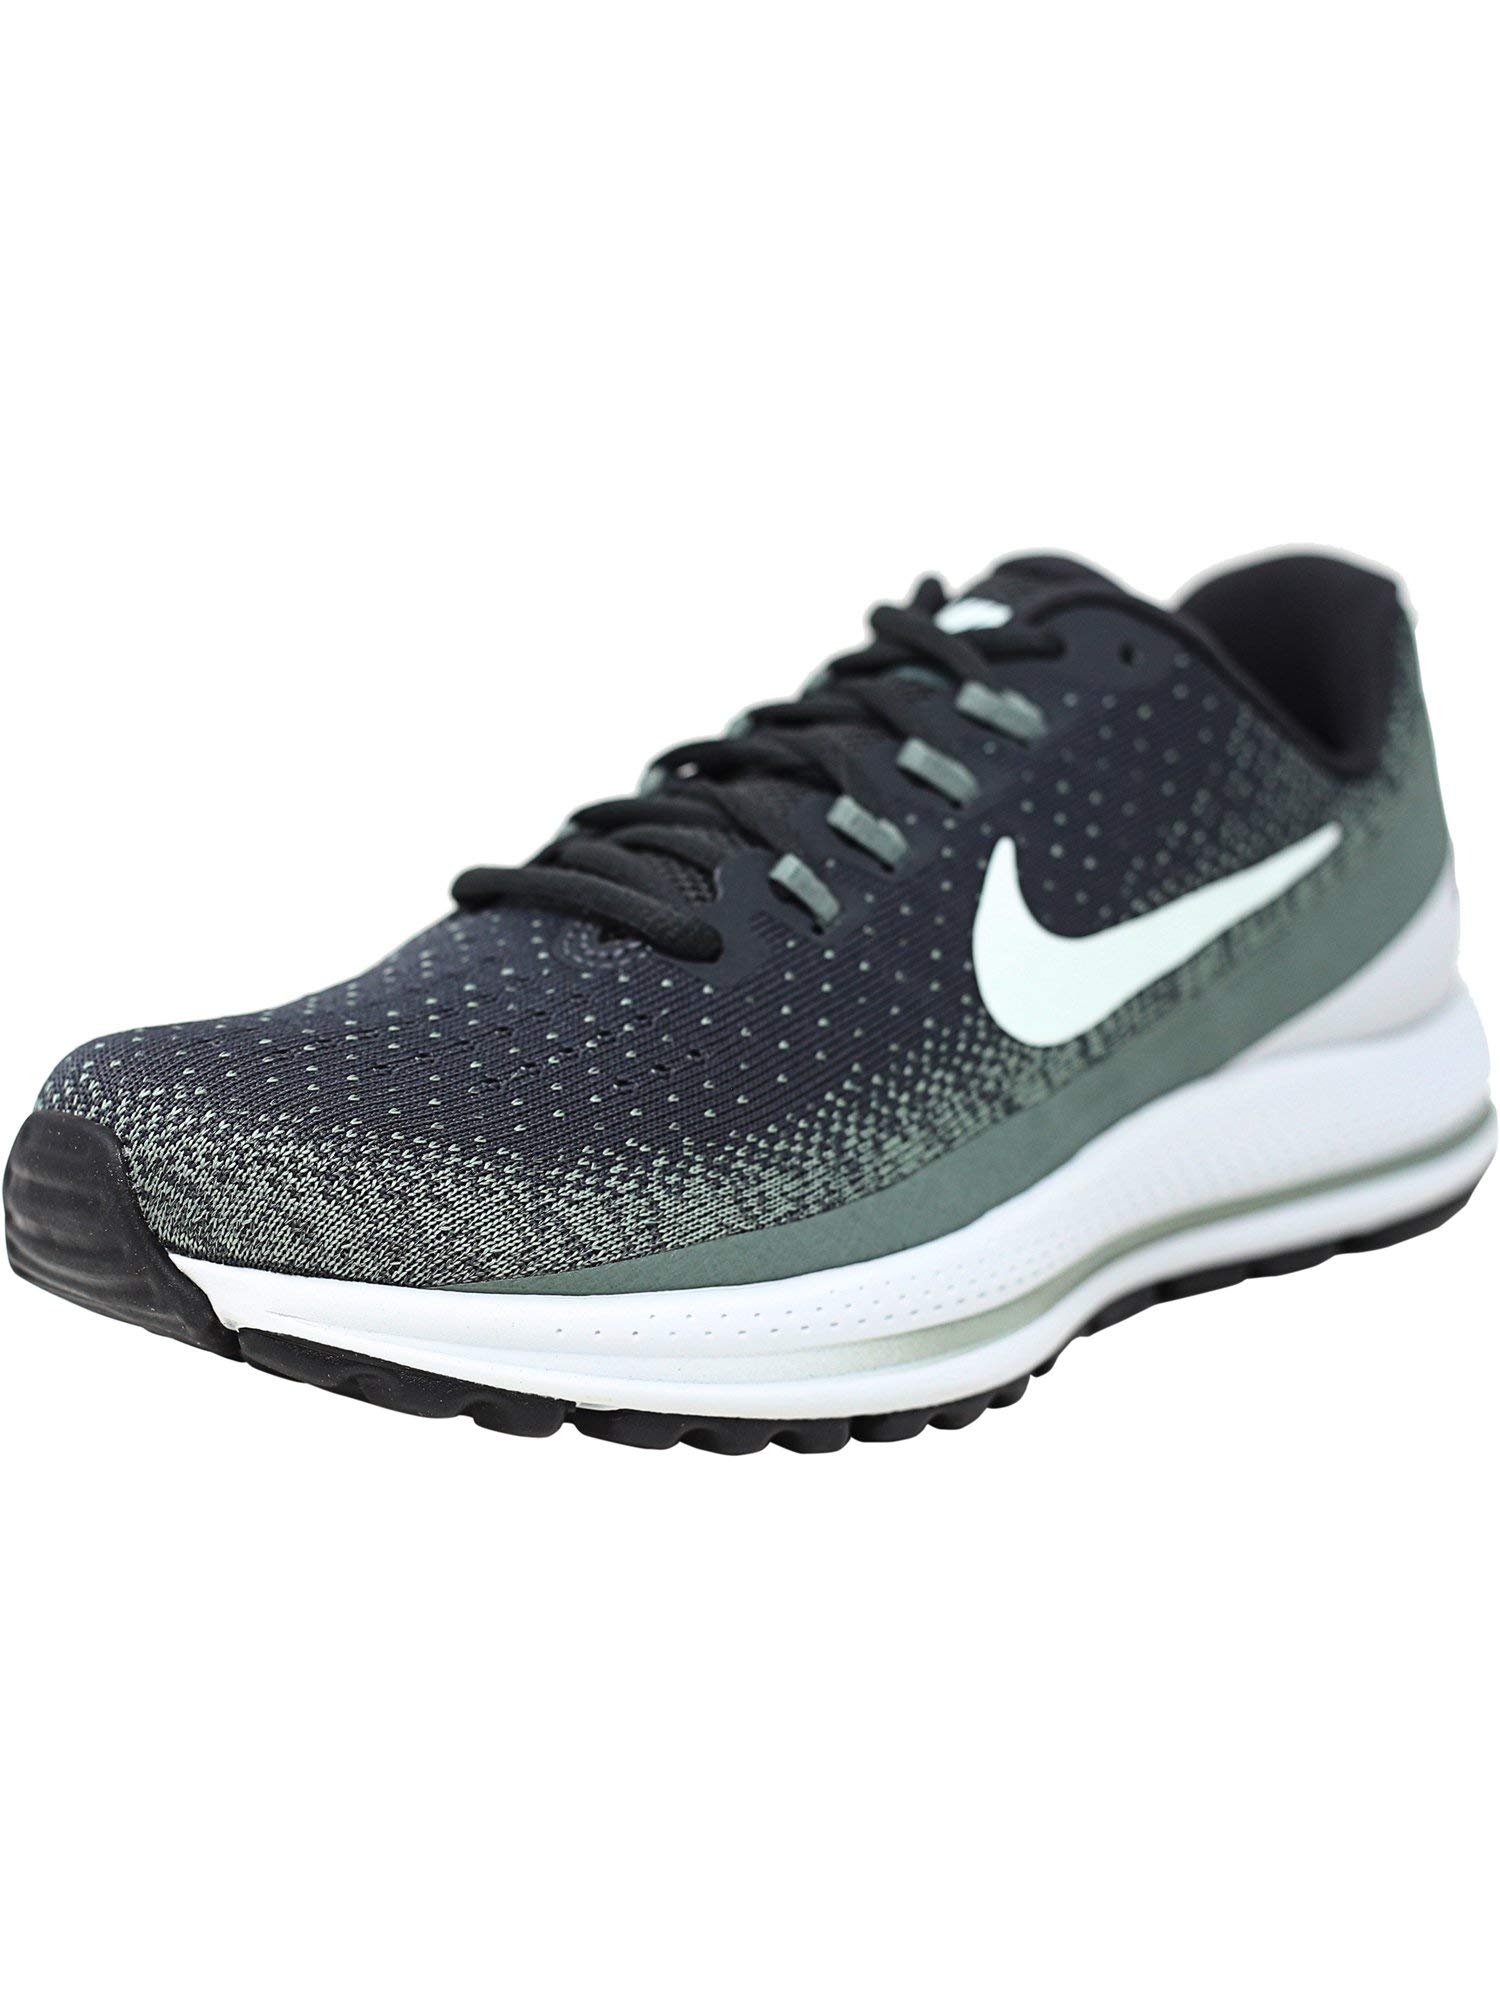 1d6a3307296 Galleon - Nike Men s Air Zoom Vomero 13 Anthracite Barely Grey Ankle-High  Fabric Running Shoe - 7M